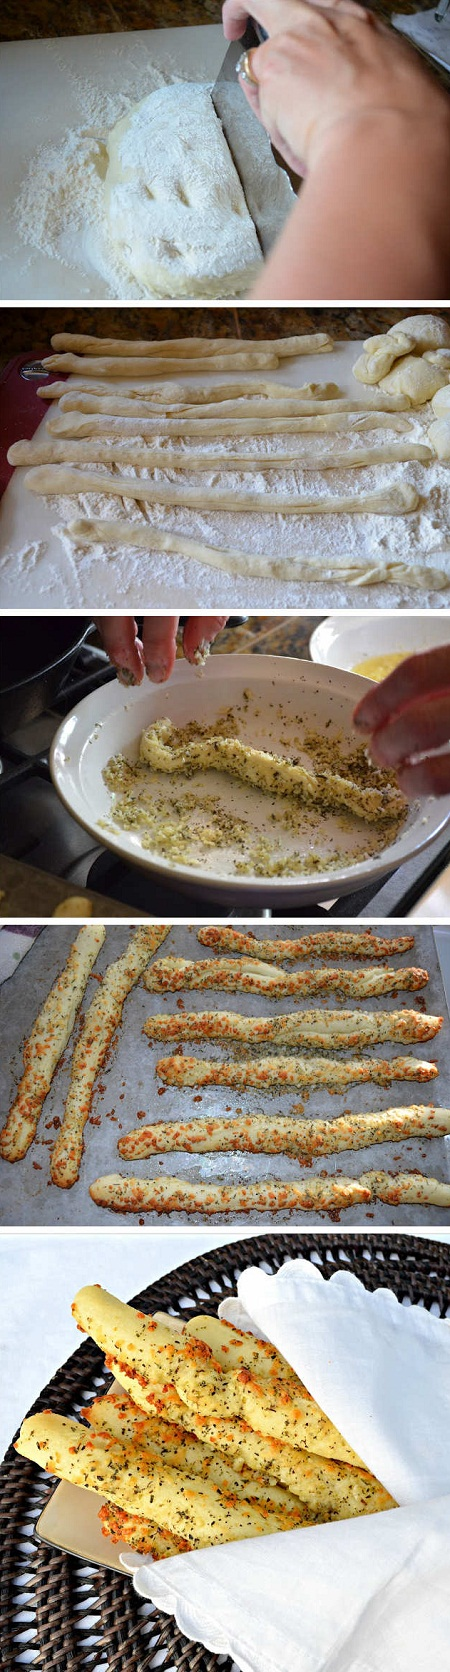 Easy-Cheesy-Garlic-And-Herb-Breadsticks